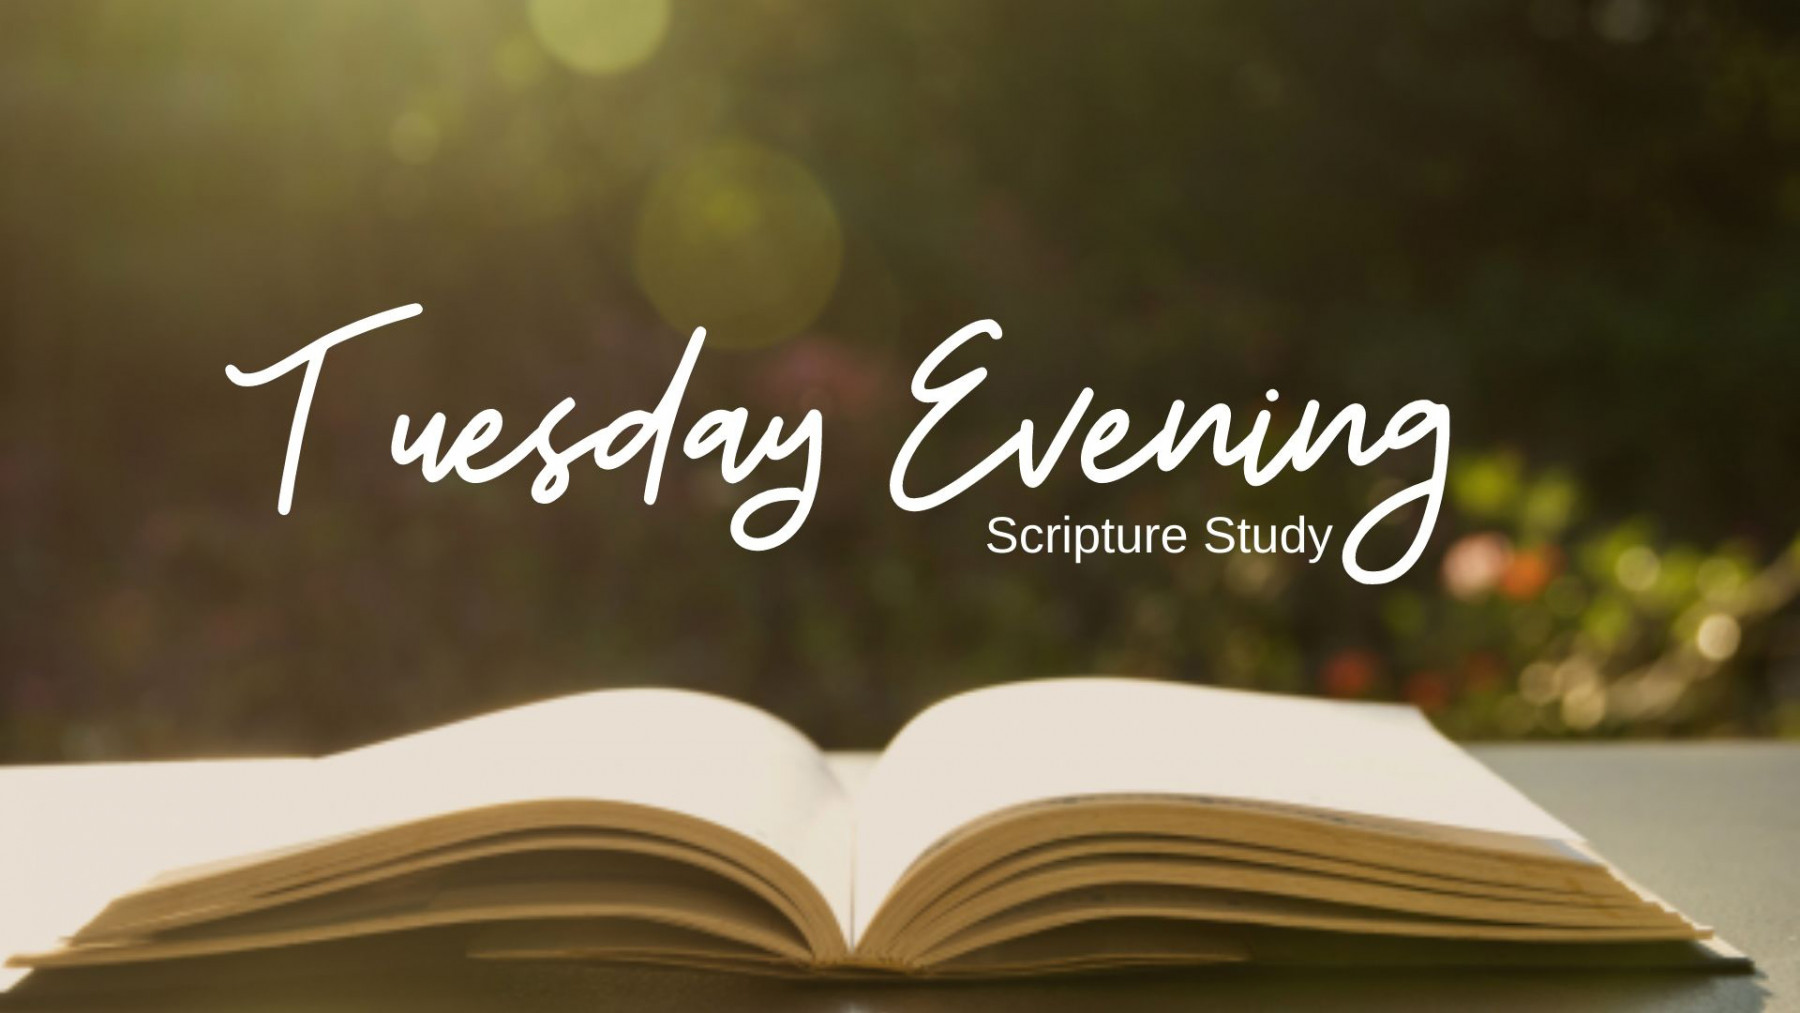 Tuesday Evening Scripture Study